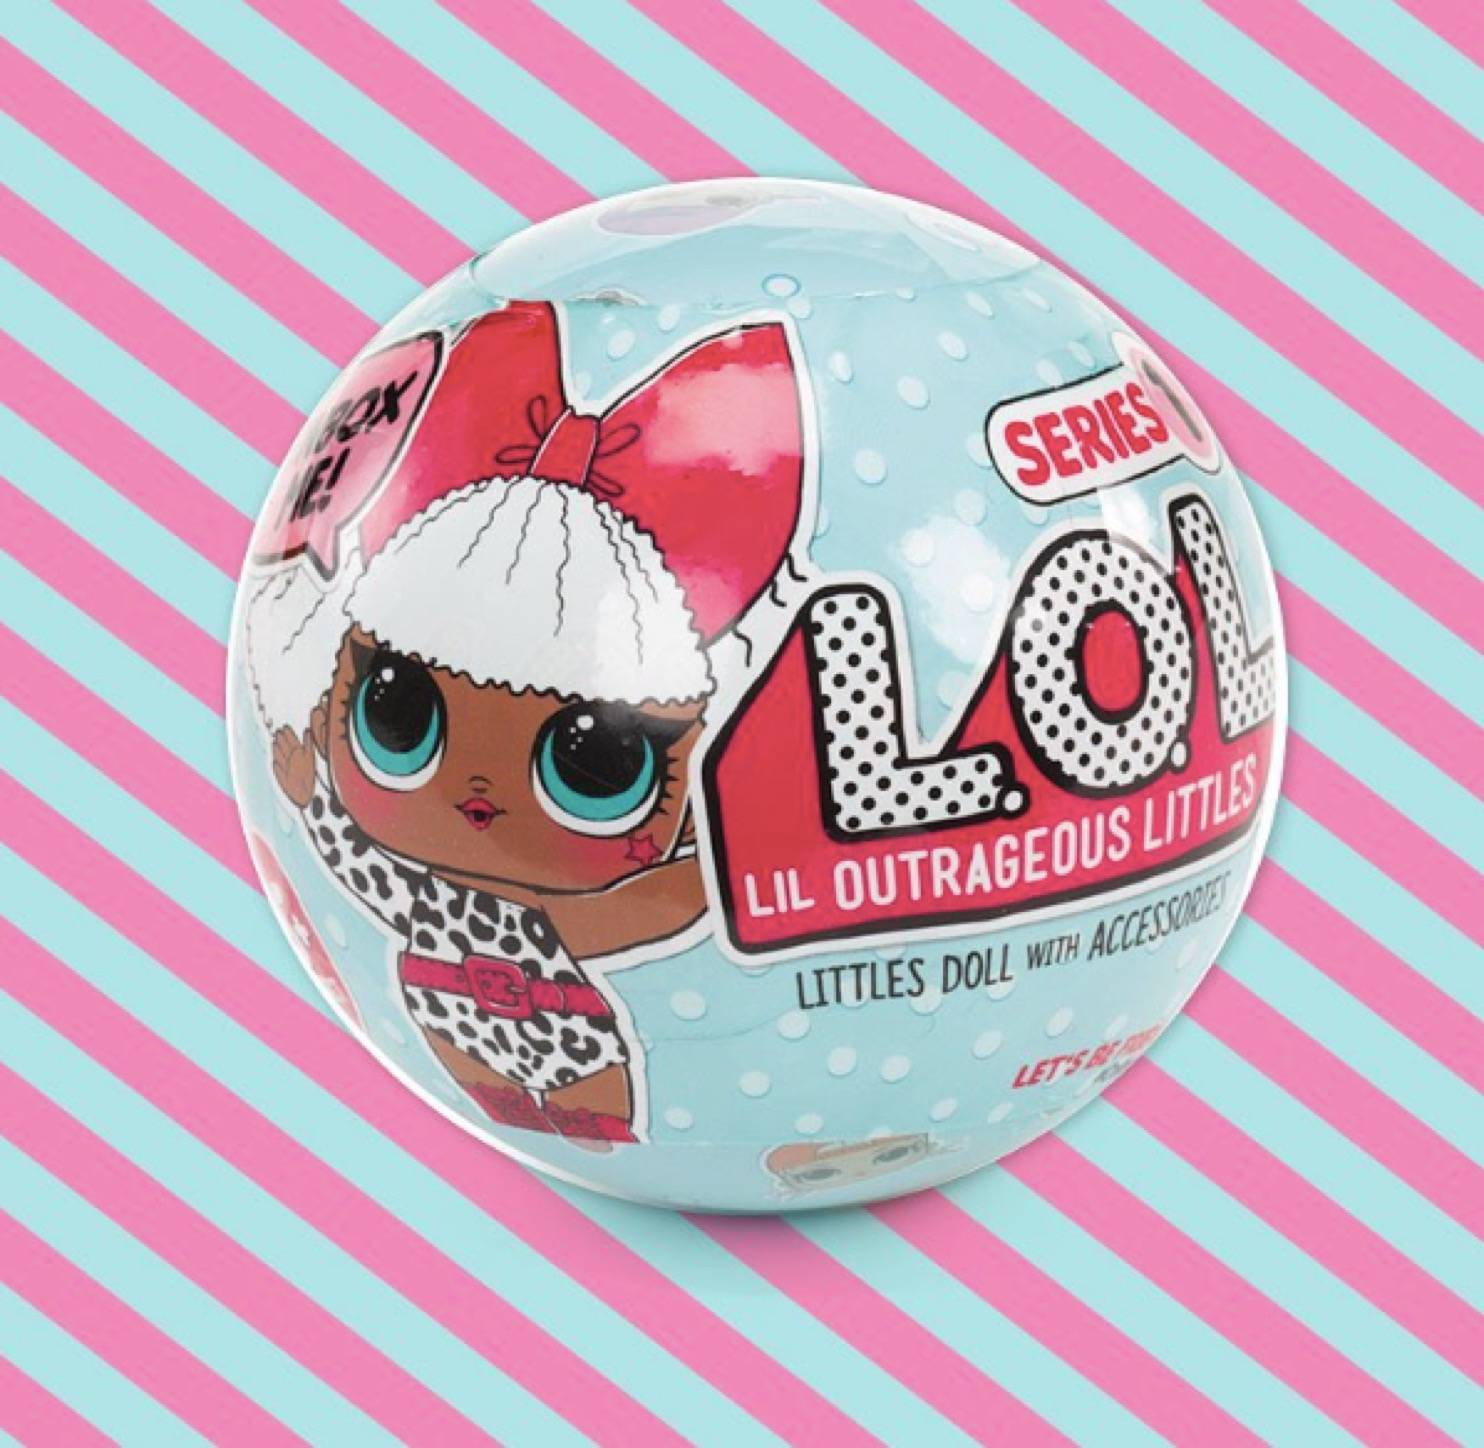 2 chances to win an L.O.L Surprise Doll